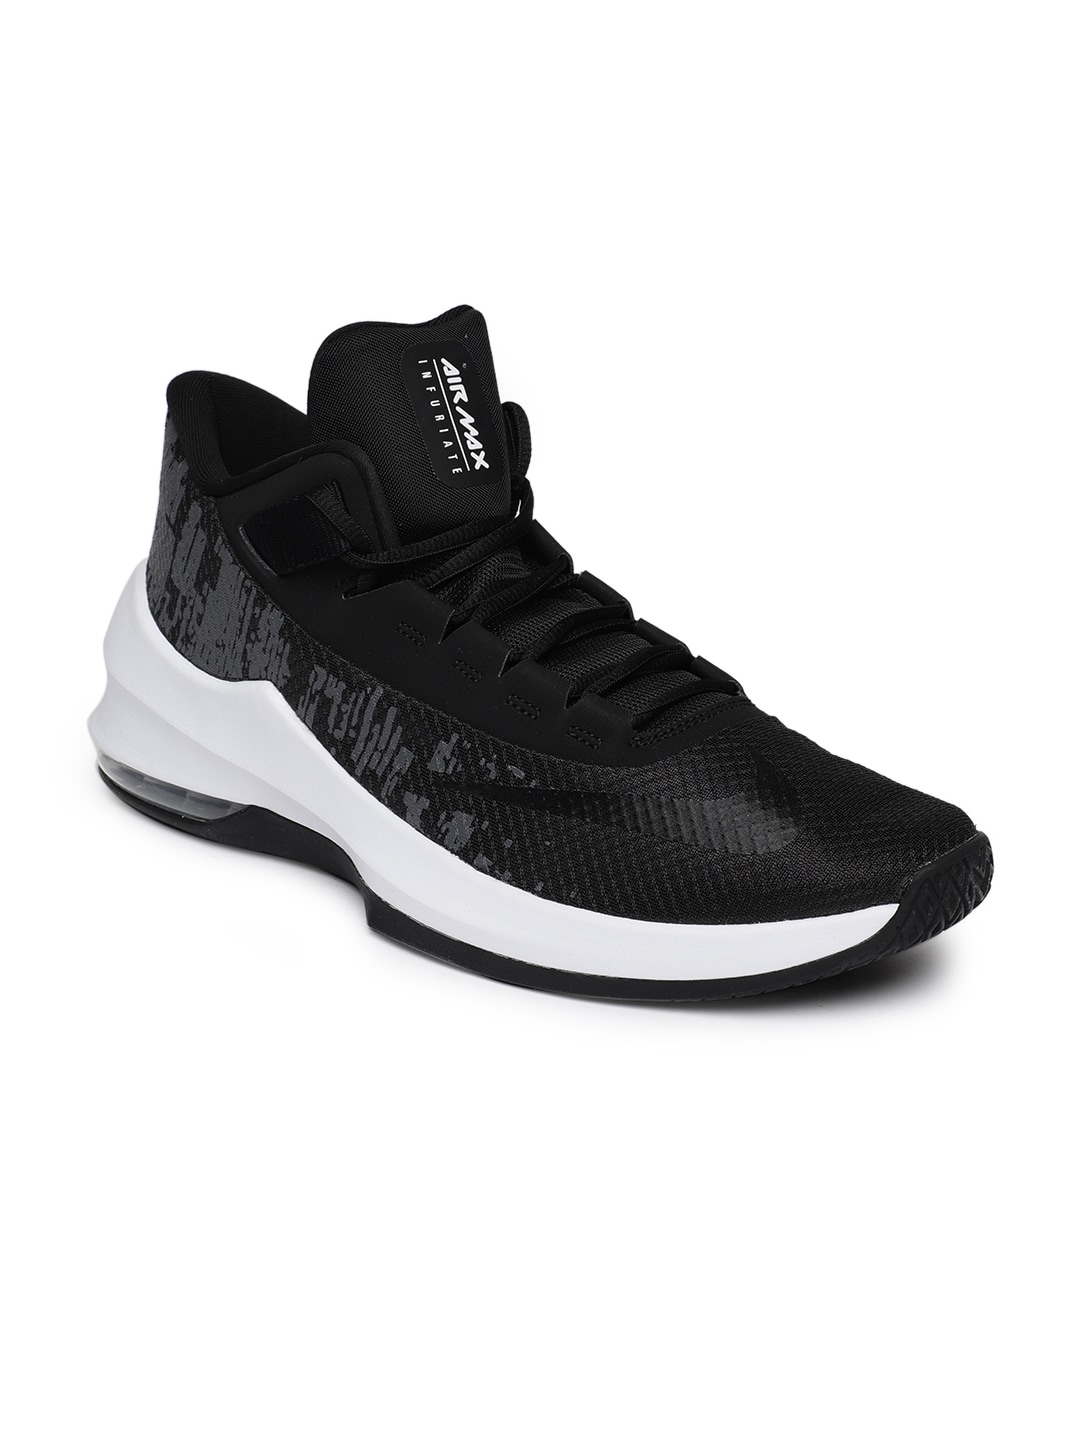 9273679be8b Nike Basketball Shoes